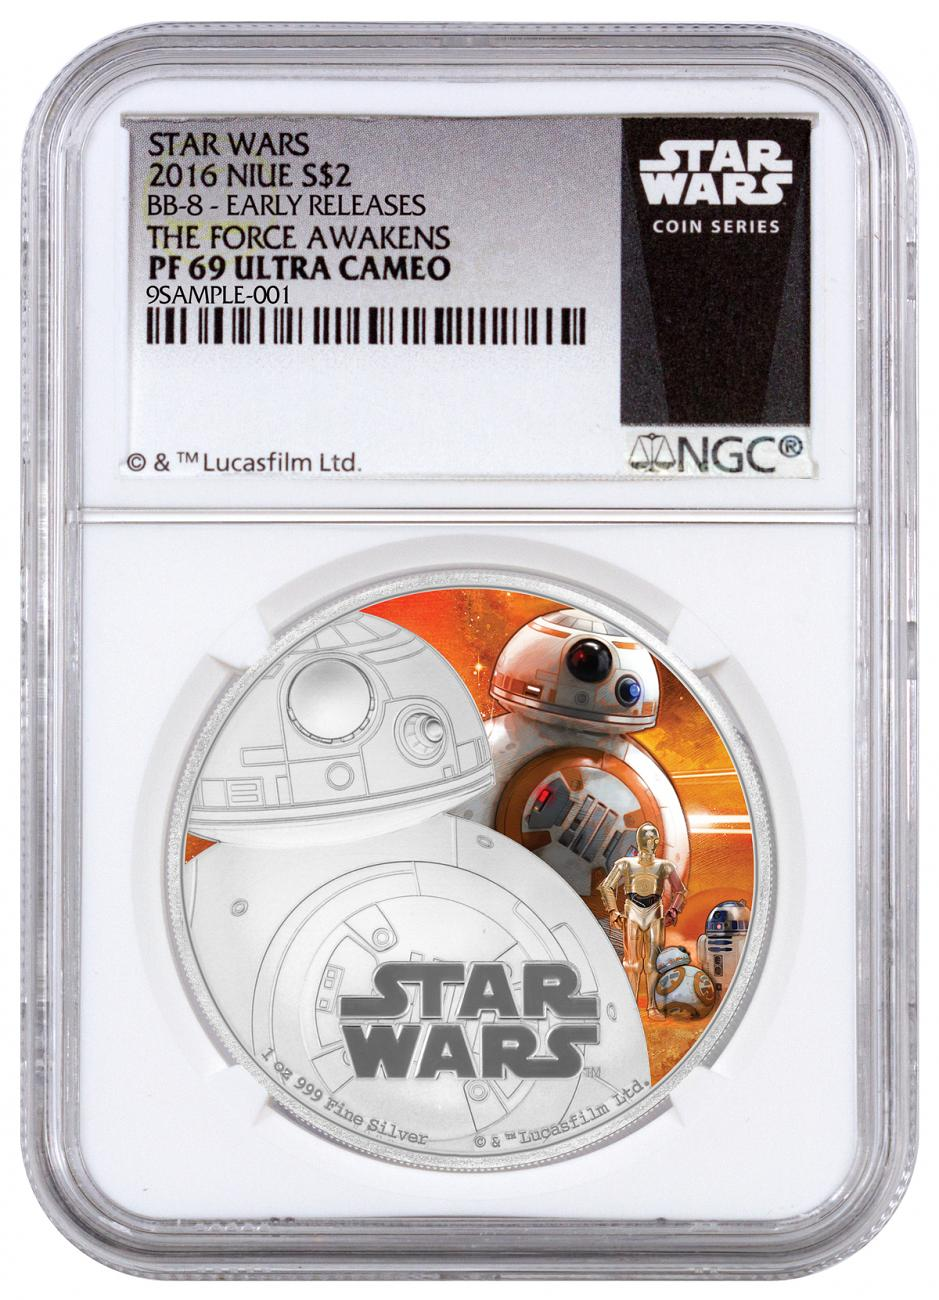 2016 Niue $2 1 oz. Colorized Proof Silver Star Wars: The Force Awakens - BB-8 - NGC PF69 UC Early Releases (Exclusive Star Wars Label)